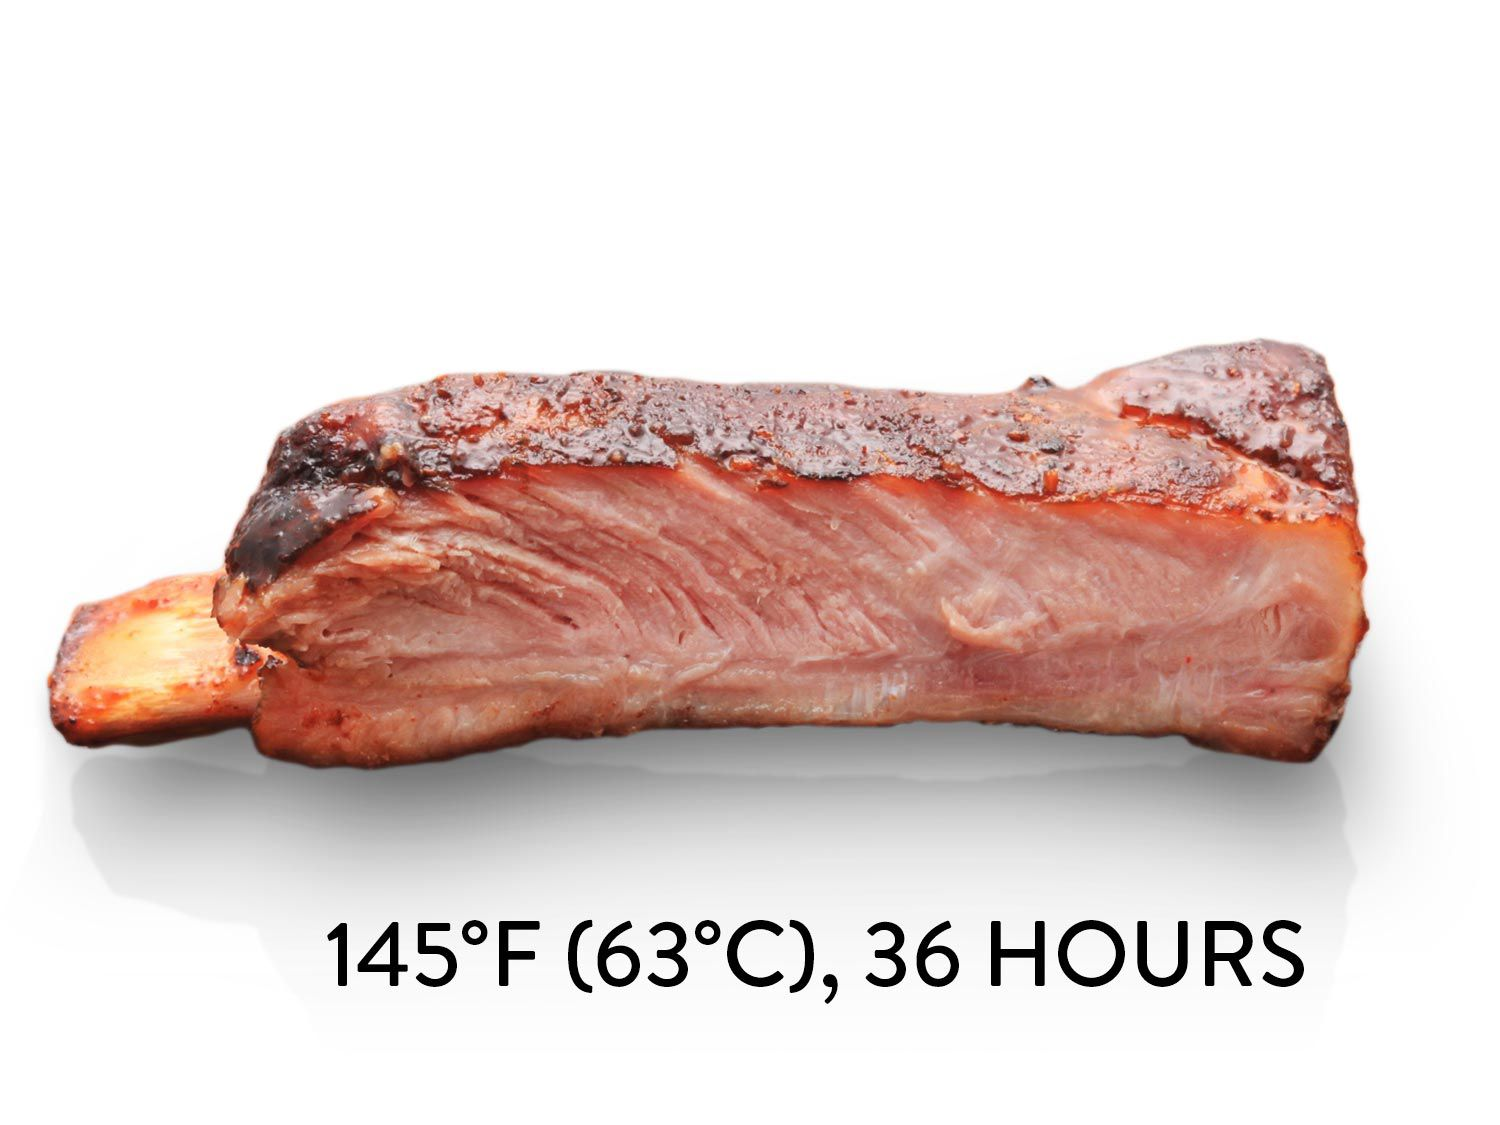 Photo of a pork rib cooked sous vide at 145°F for 36 hours